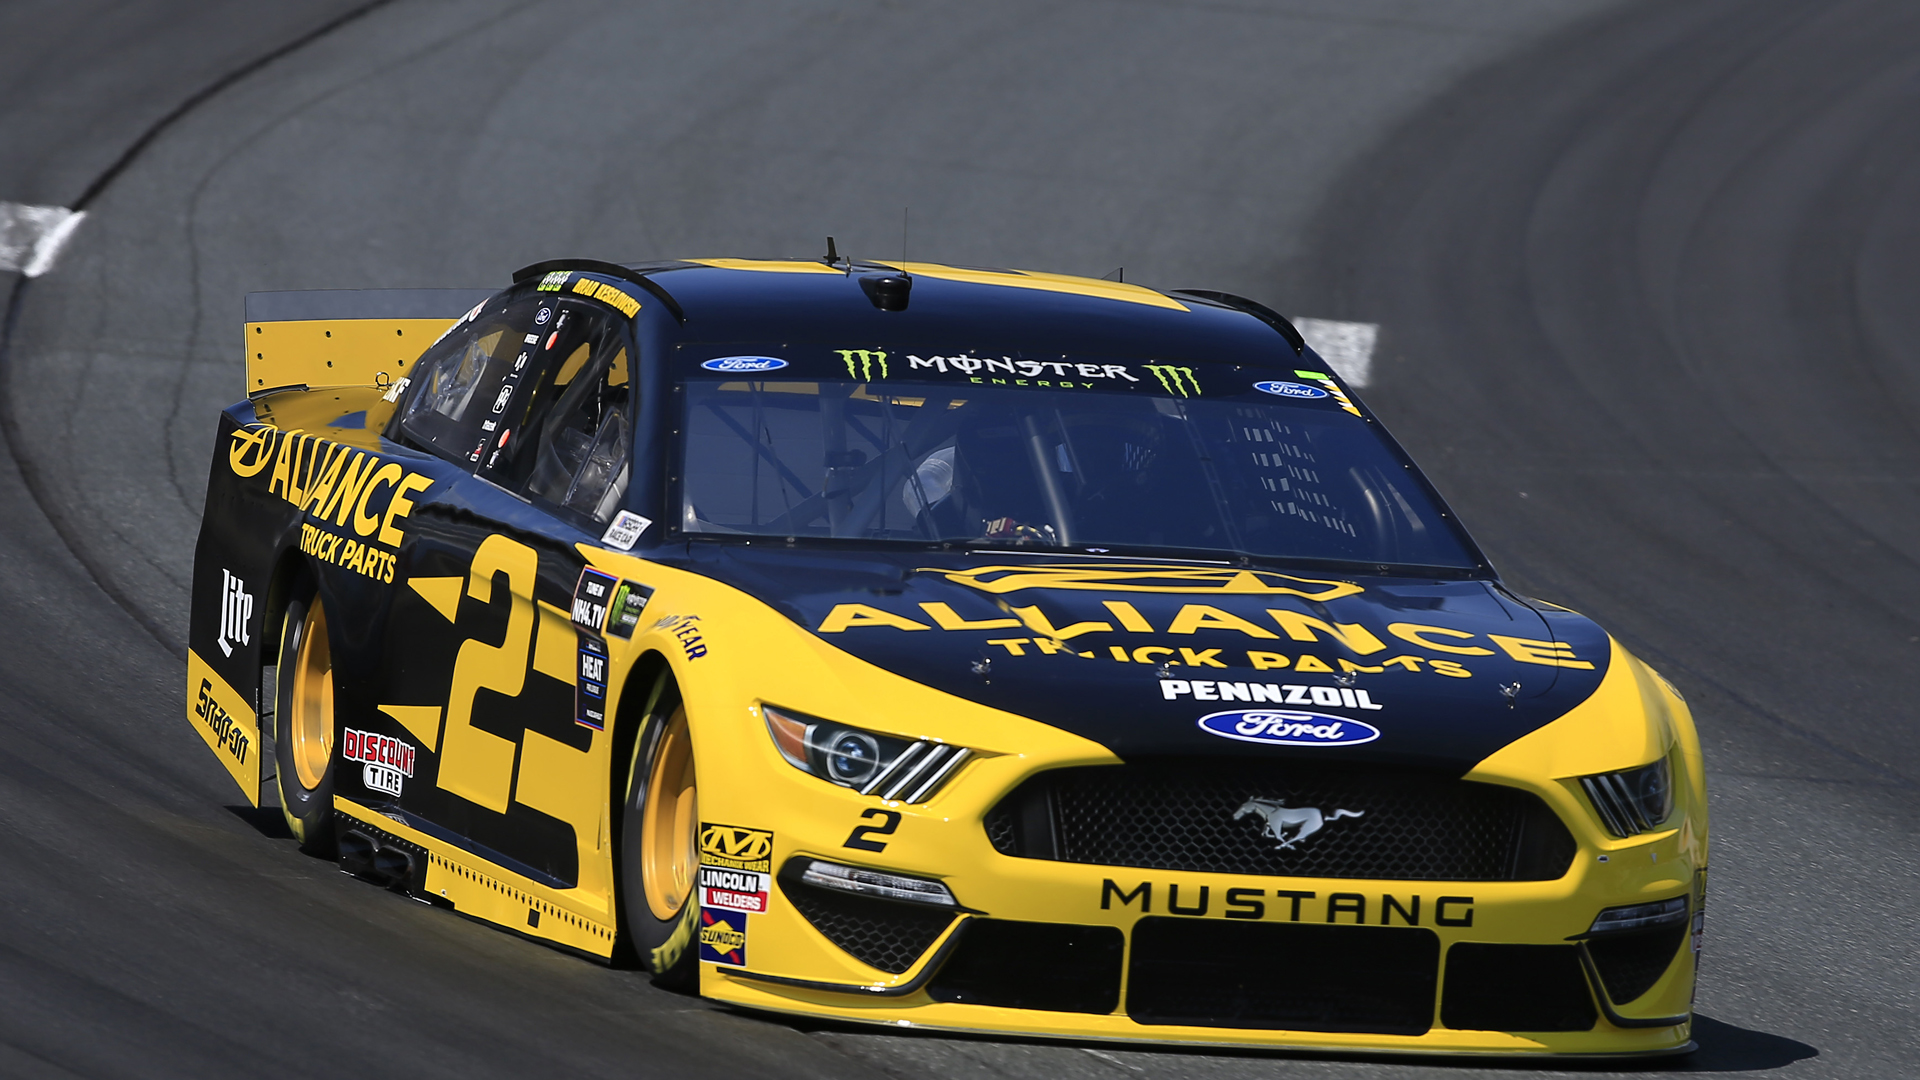 NASCAR starting lineup at New Hampshire: Brad Keselowski takes pole away from Kyle Busch